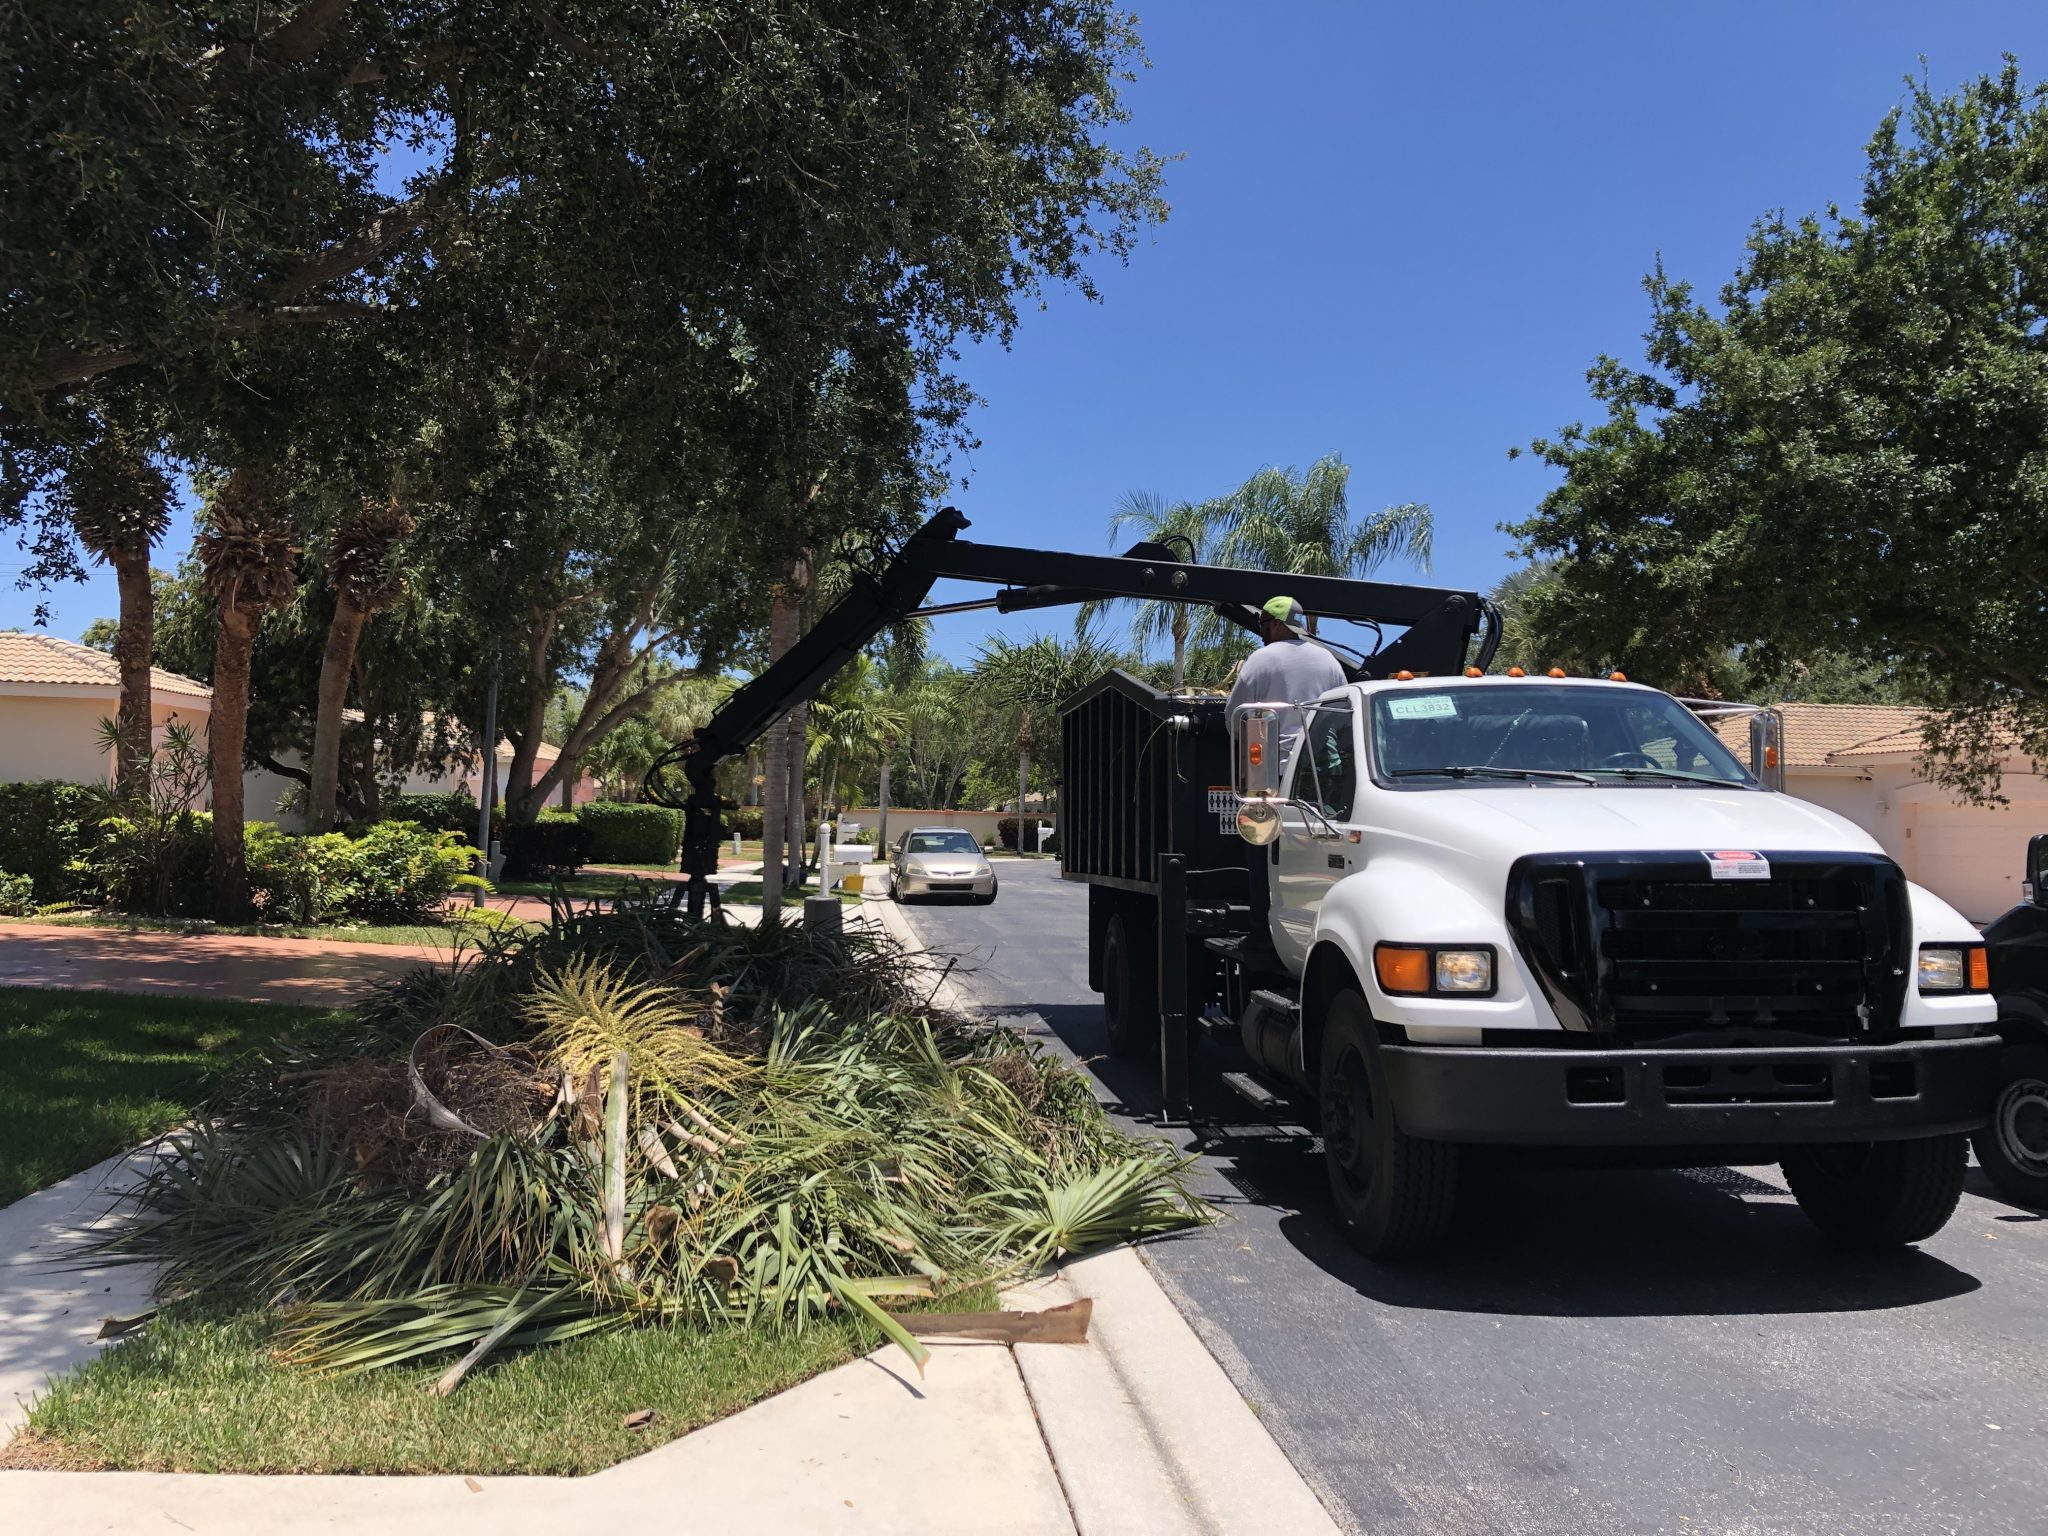 Commercial and HOA Landscape Debris Removal